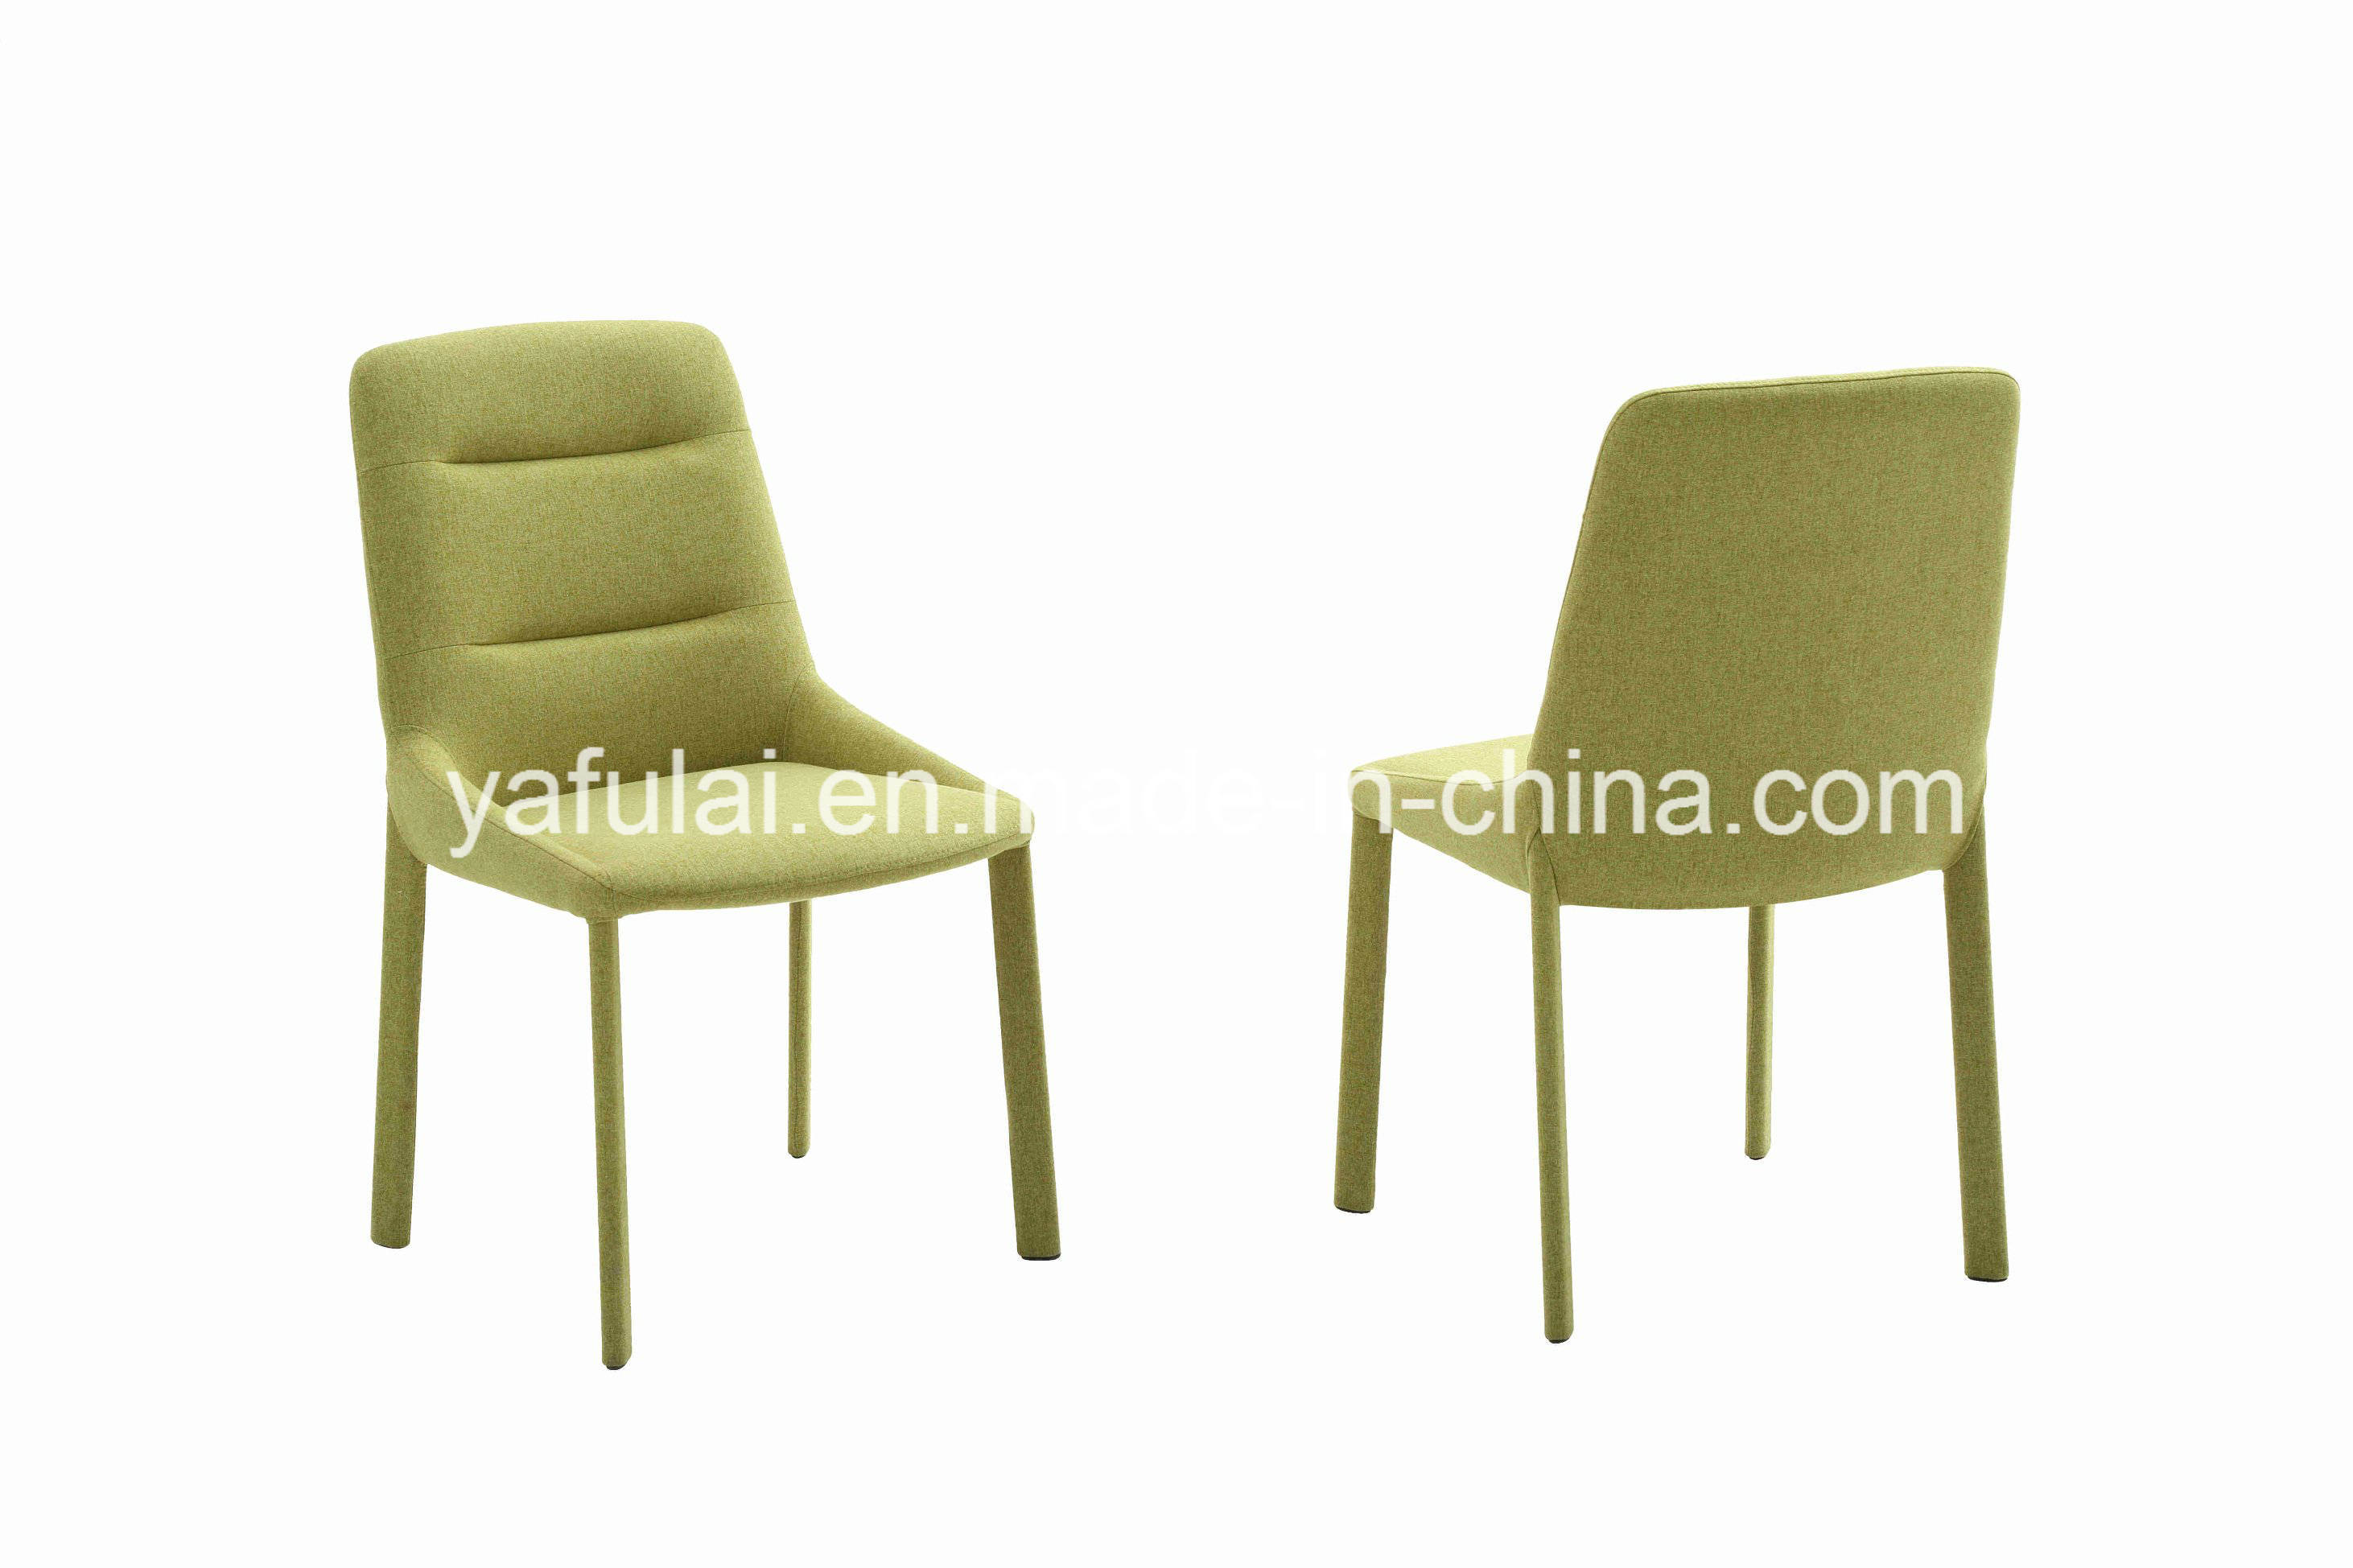 Pleasing Hot Item Modern Green Fabric Dining Chair Covers Restaurant Furniture Creativecarmelina Interior Chair Design Creativecarmelinacom